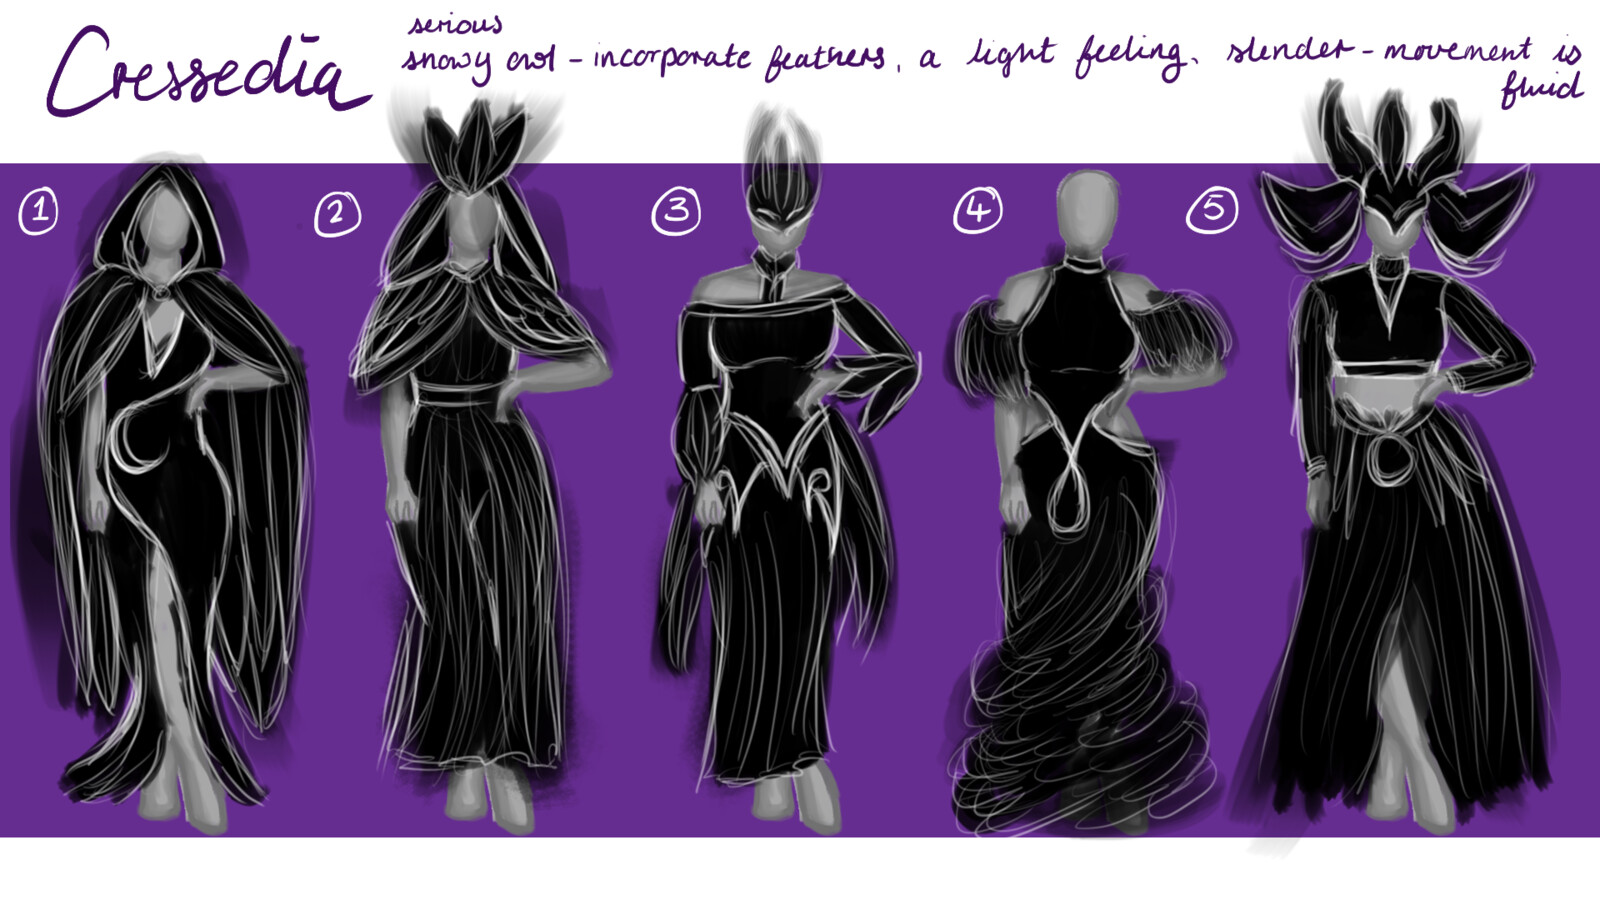 some silhouettes for her possible outfit